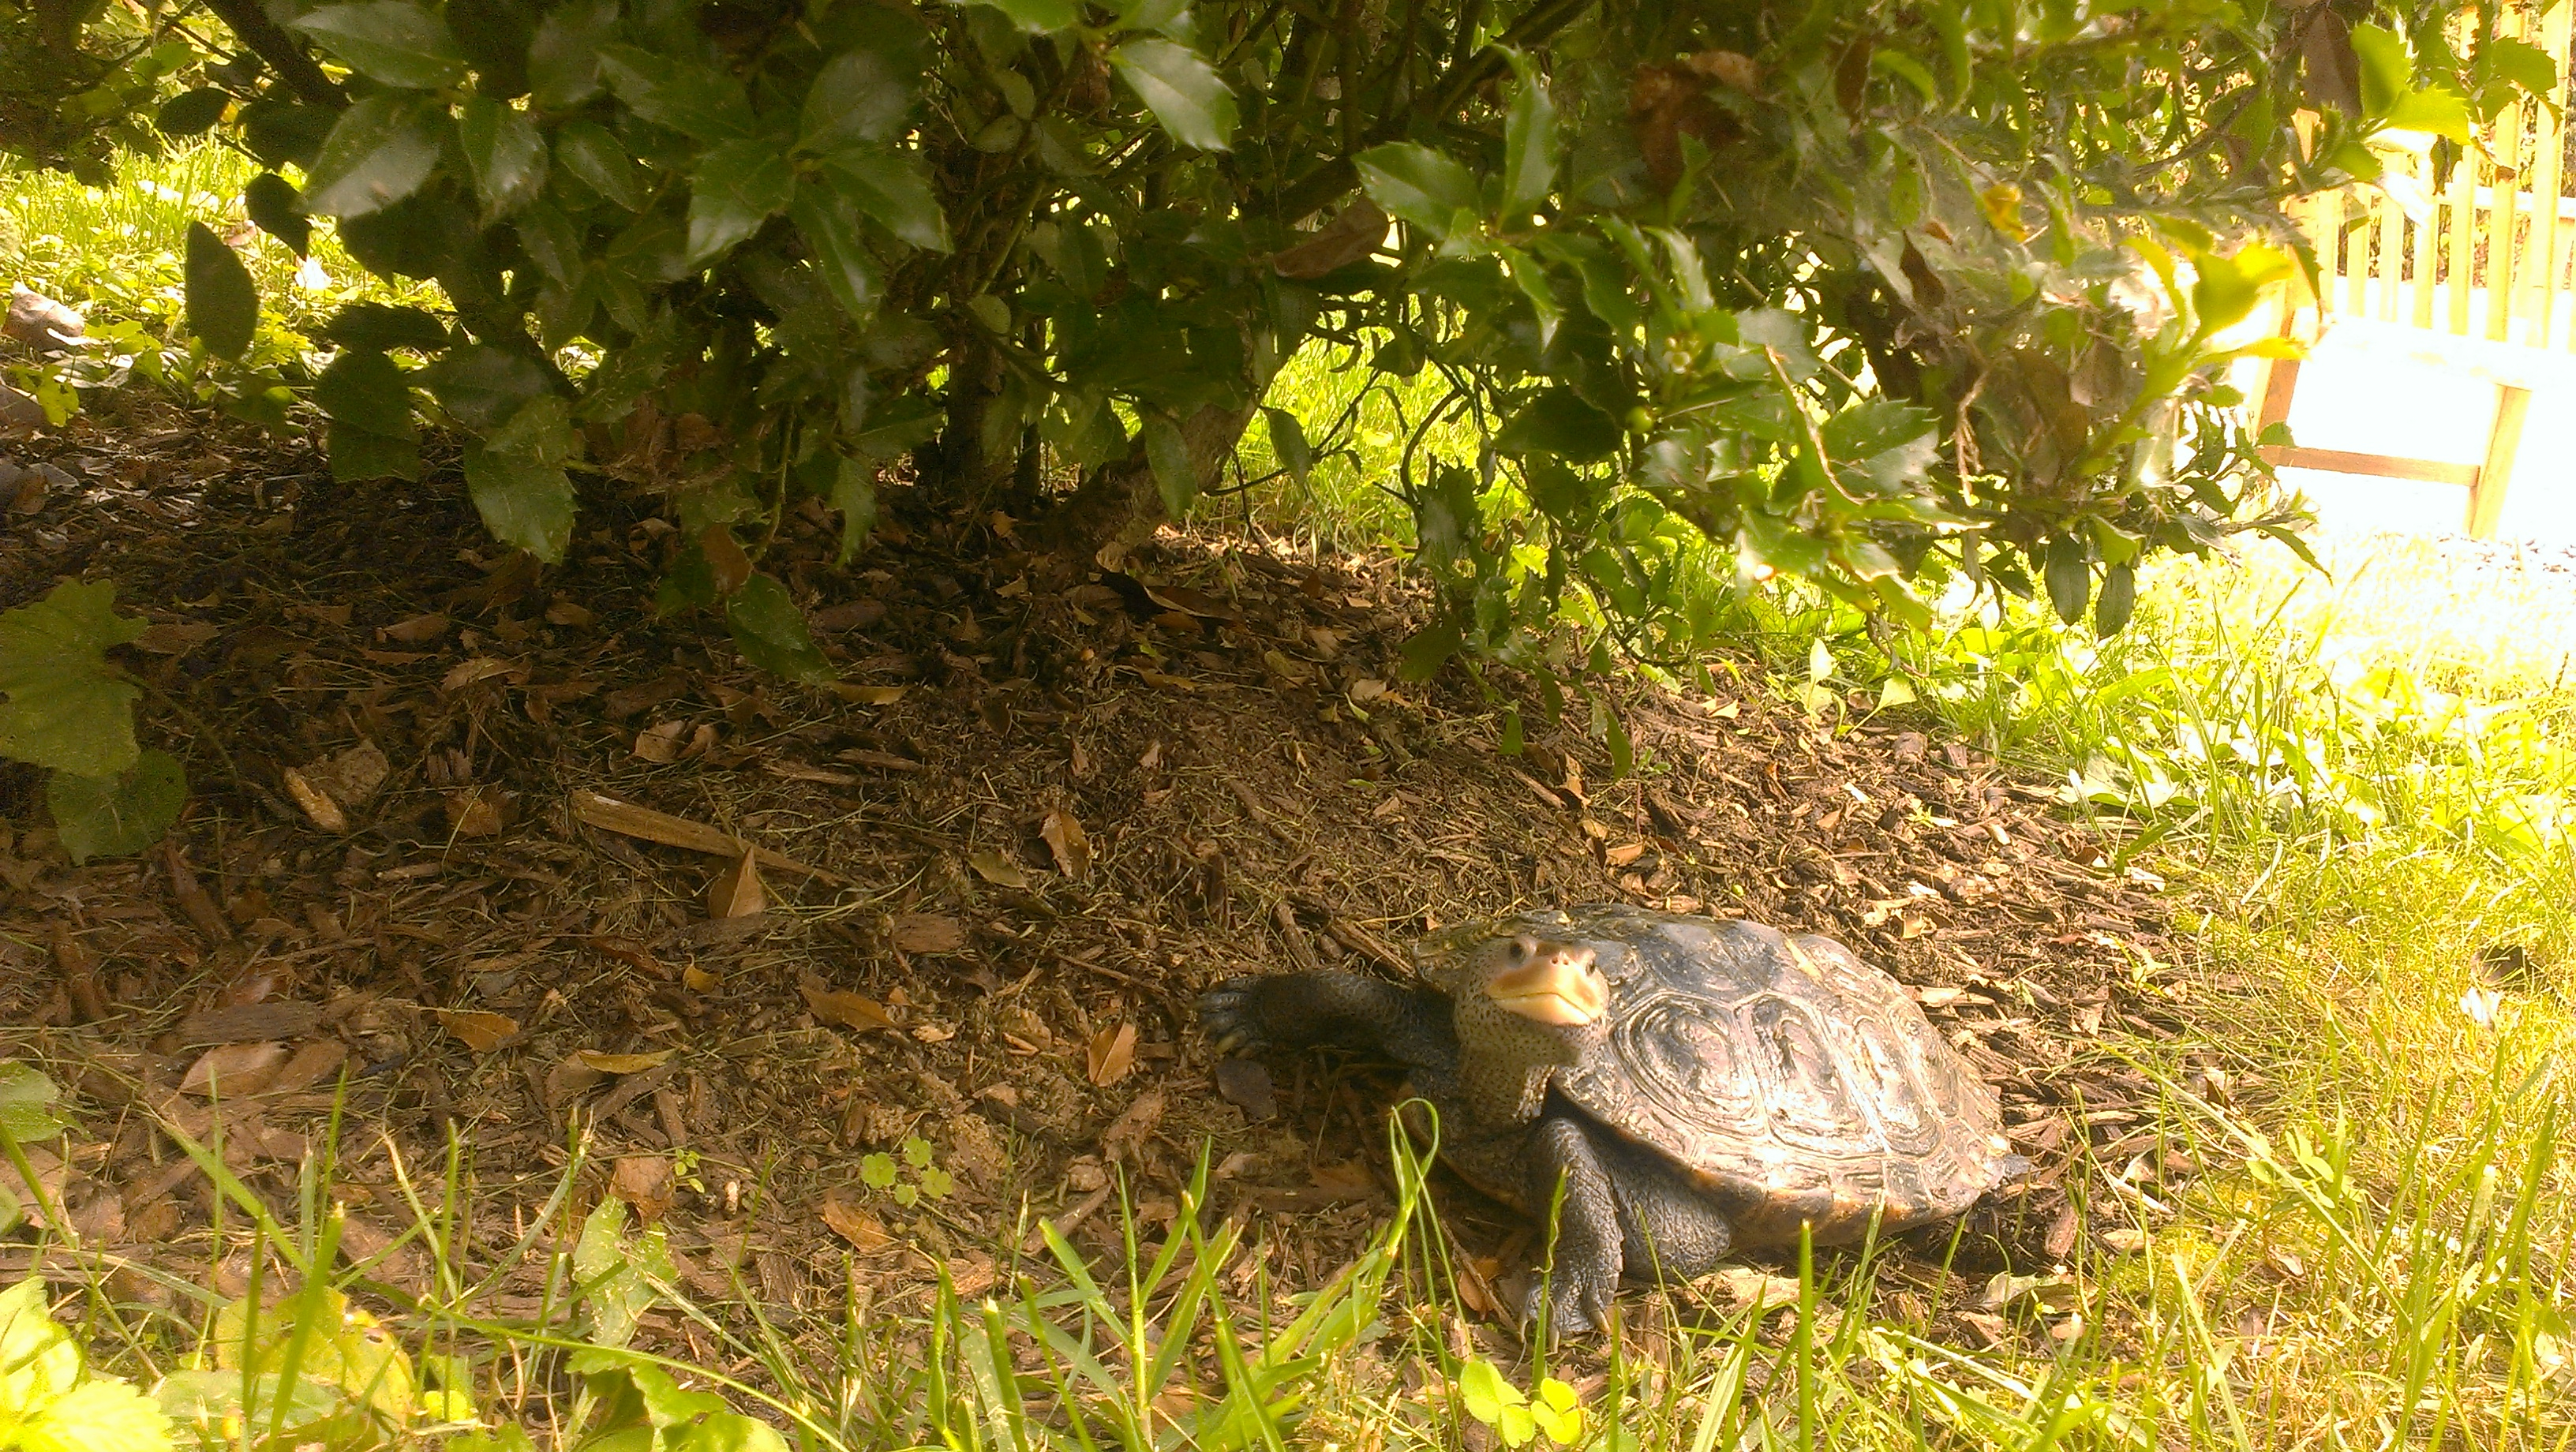 Torope, the Howard County Conservancy at Mt. Pleasant's Diamondback Terrapin, takes a walk in the gardens